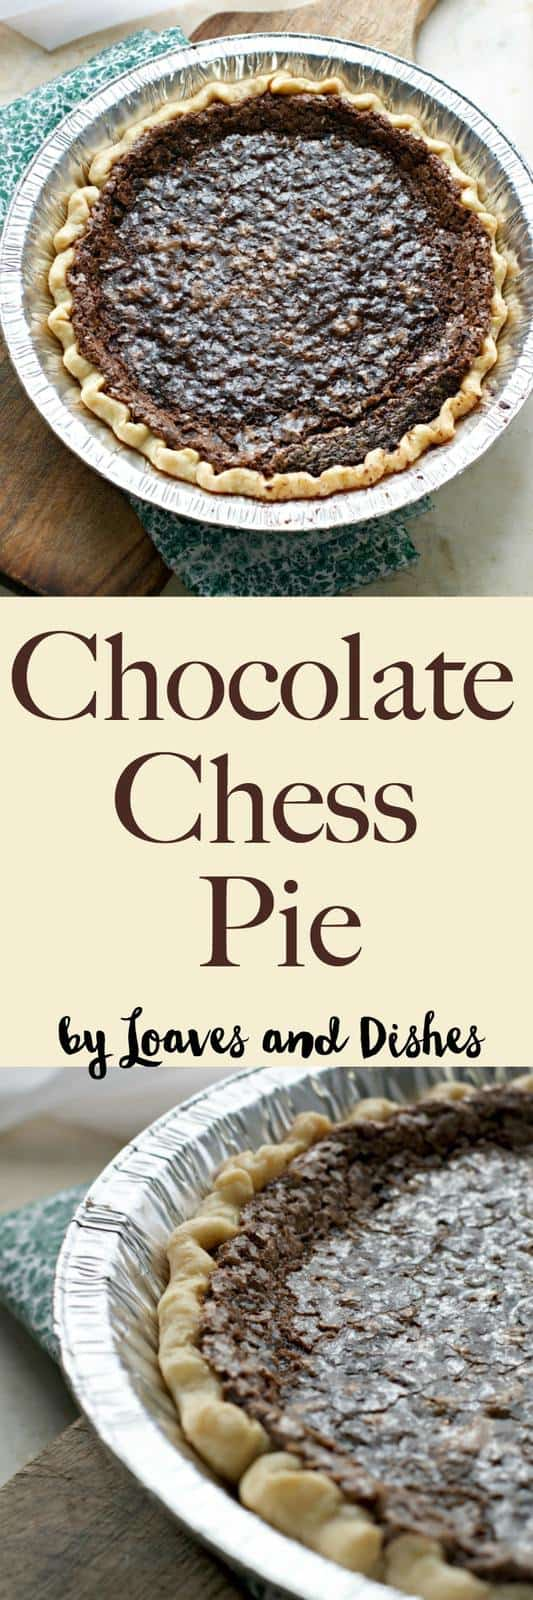 CHOCOLATE CHESS PIE - Loaves and Dishes